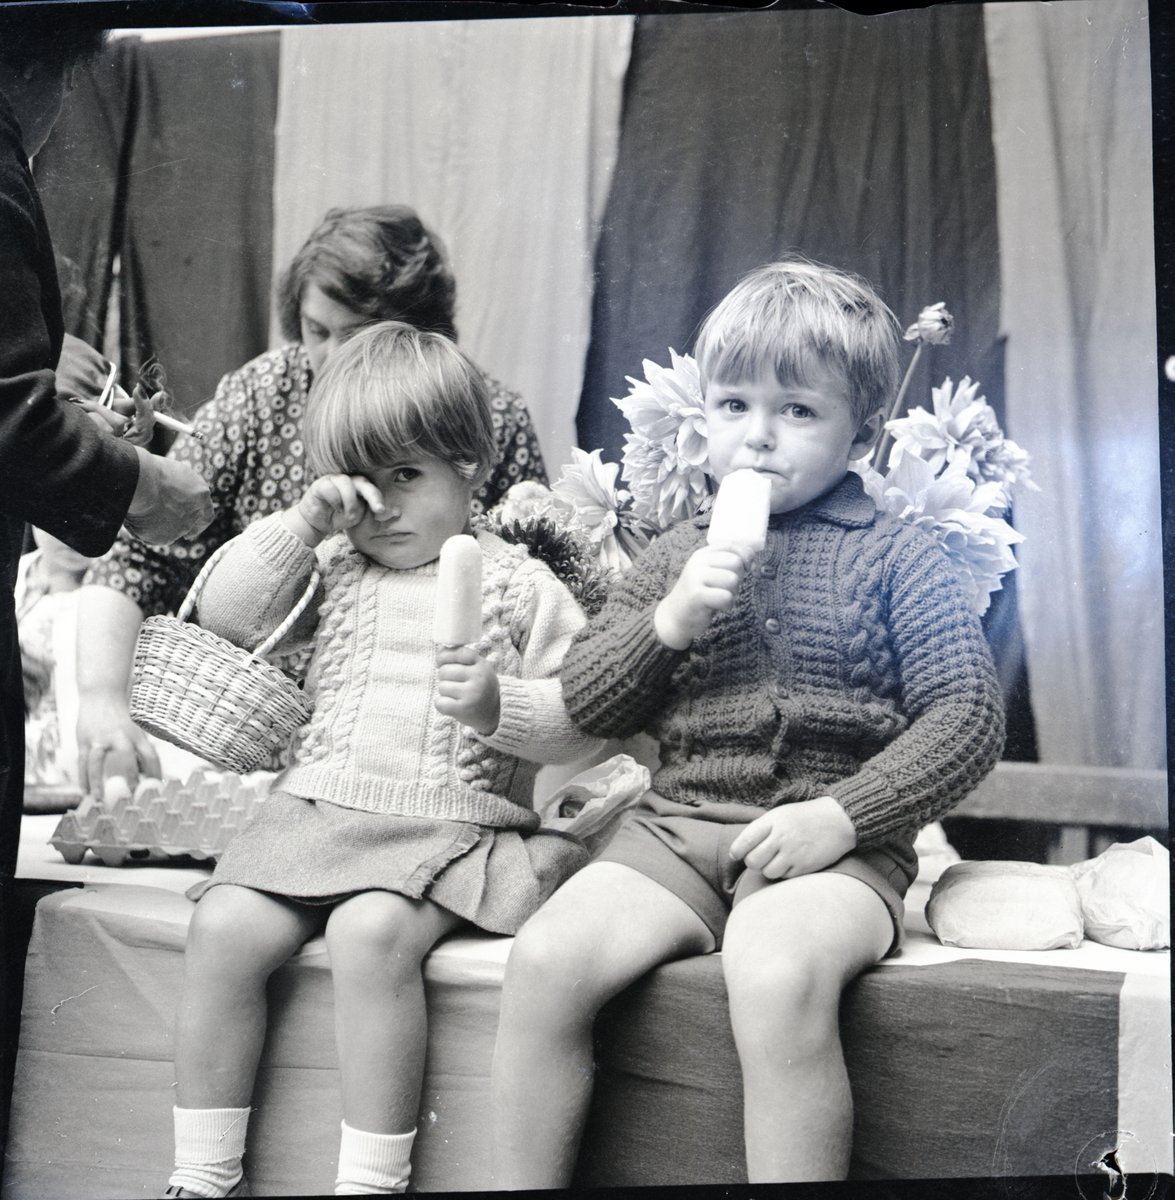 Let them eat cake....well ice lollies! Etal Flower Show 1965. Gardening has always been a large part of rural life and the annual show was always competitive! #FordandEtal #flowershow #HBAHhobbies #northumberlandpic.twitter.com/jDrFpOAJtg